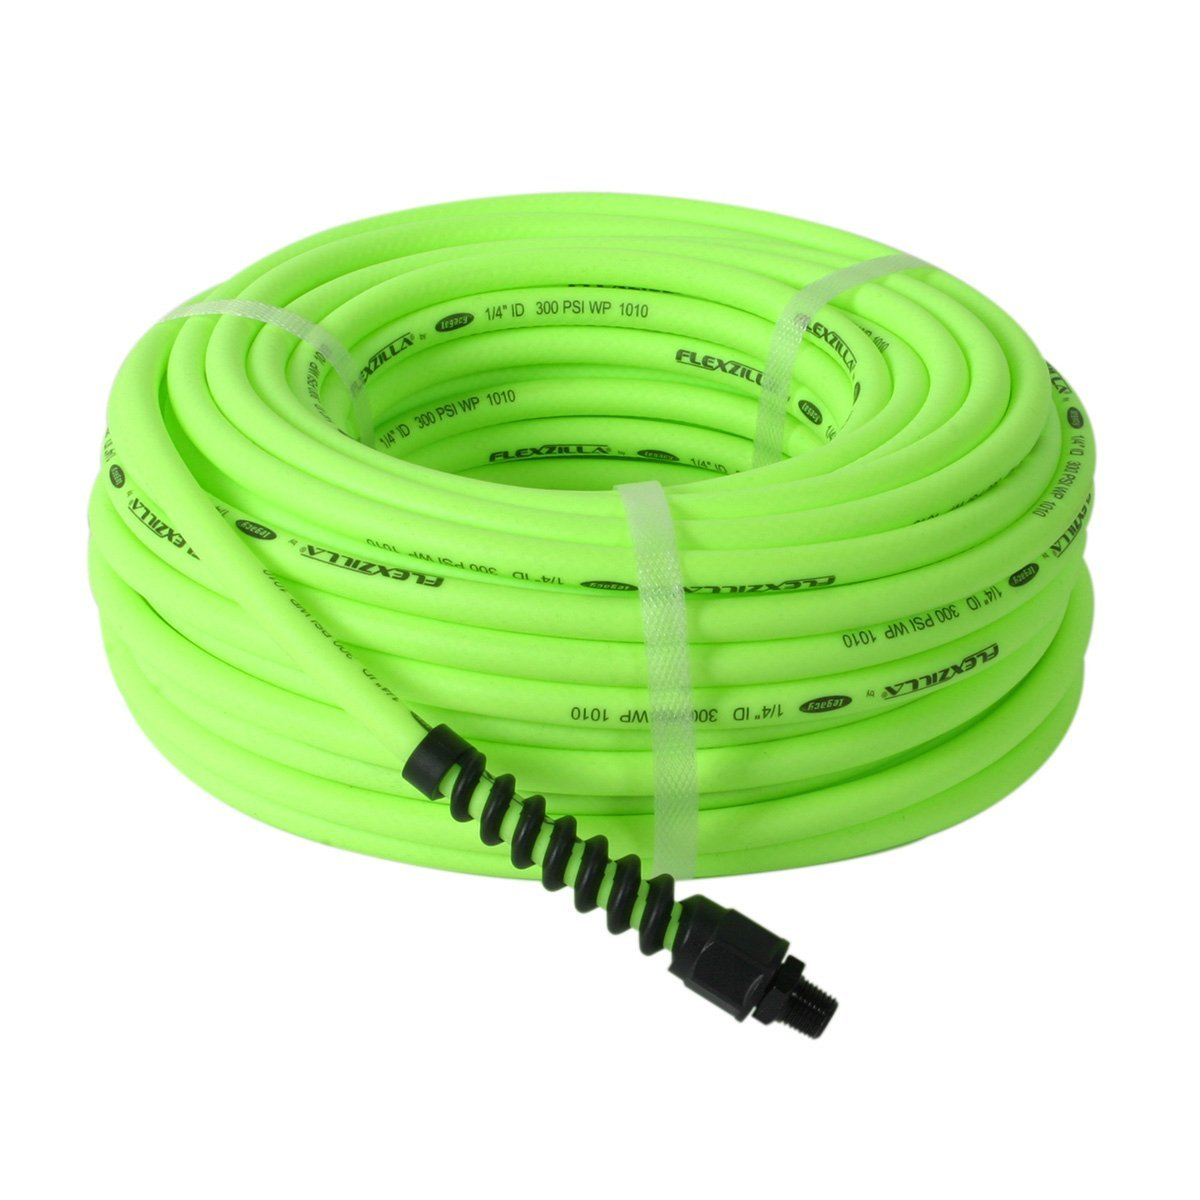 Pro Air Hose, 1/4 in. x 50 ft., Heavy Duty, Lightweight, Hybrid, ZillaGreen - HFZP1450YW2, Extreme all-weather flexibility By Flexzilla Ship from US